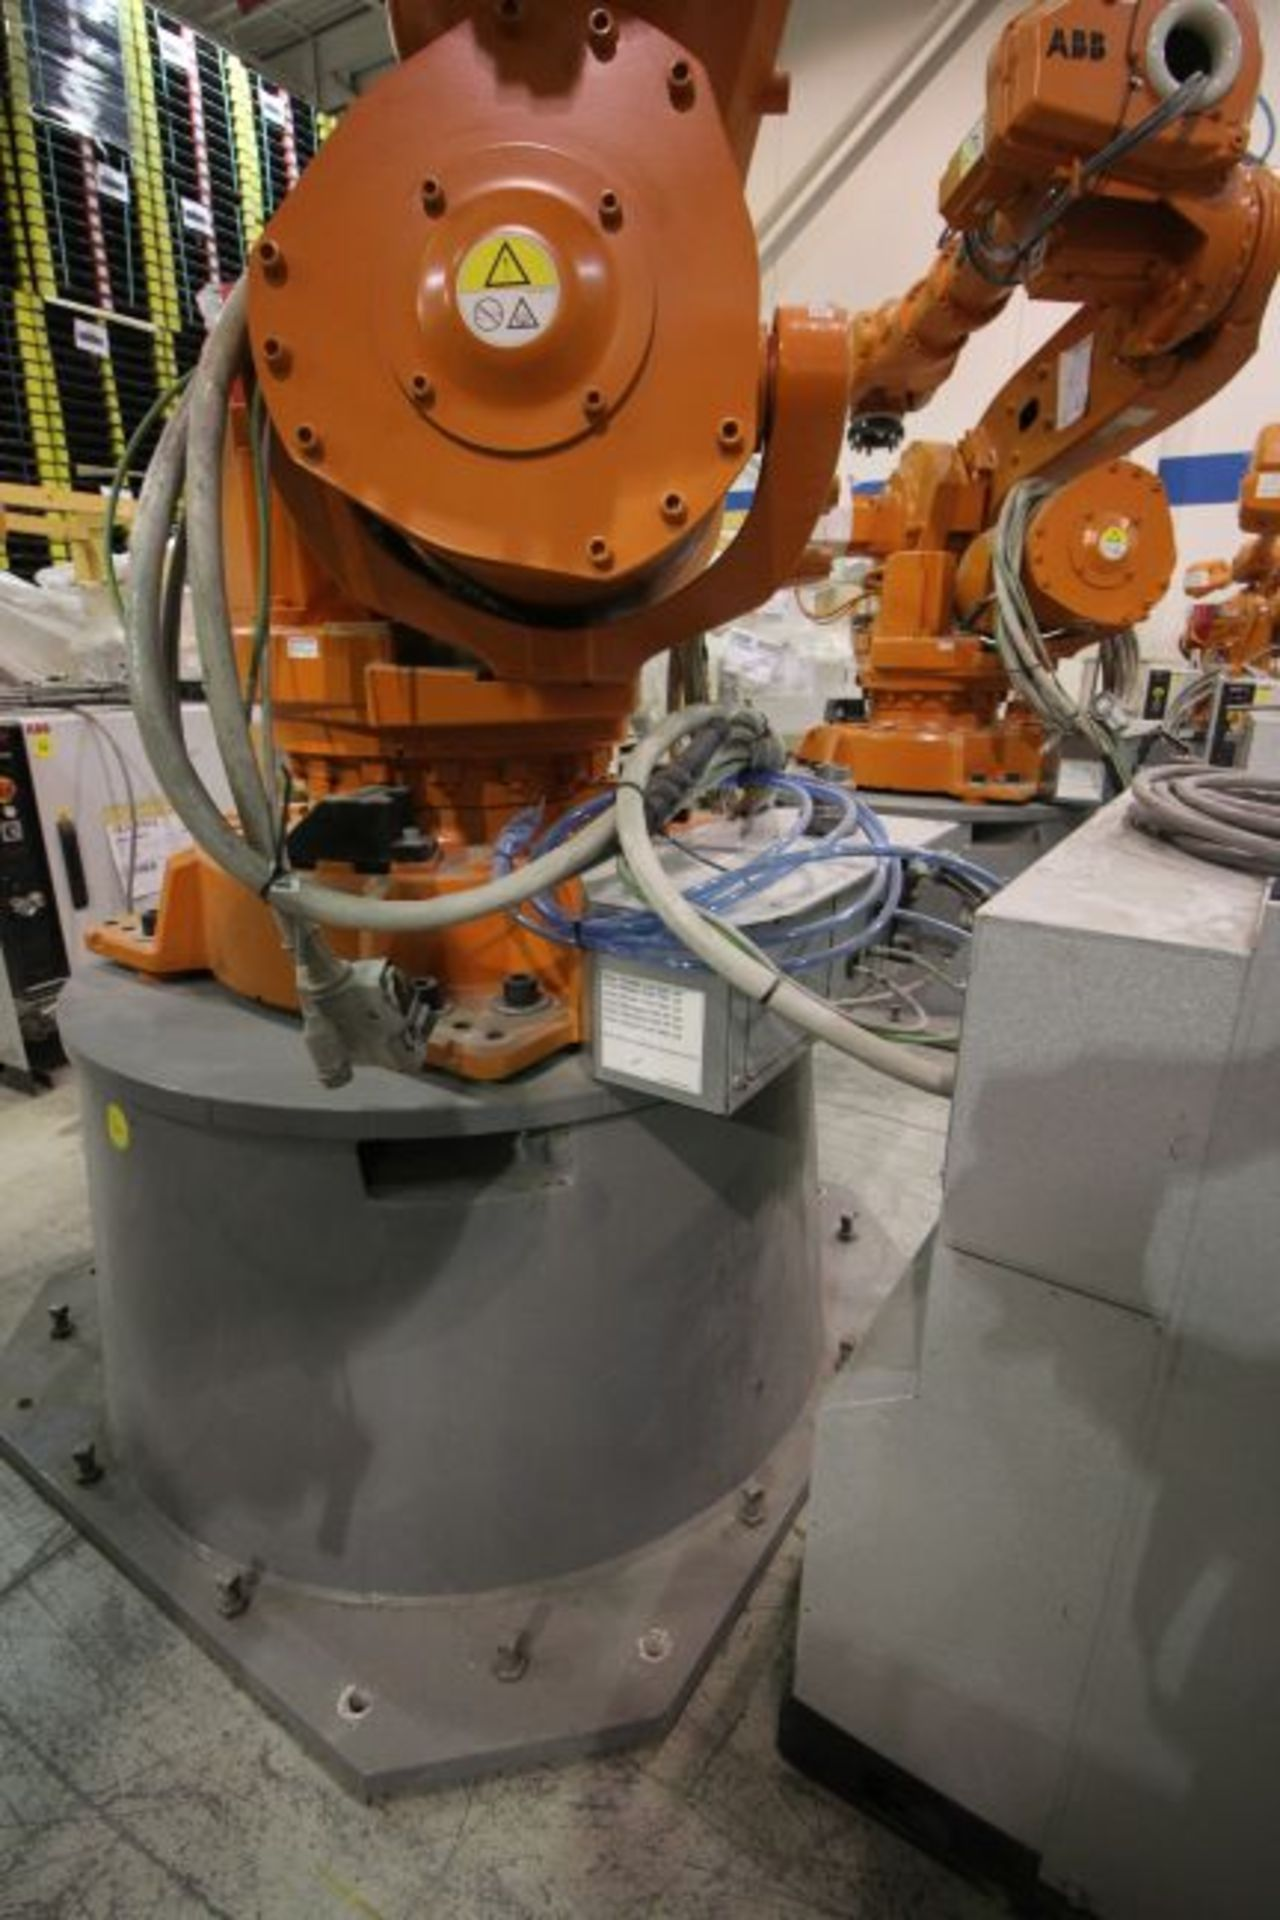 ABB ROBOT IRB 6640 2.8/185 WITH IRC5 CONTROLS, YEAR 2014, SN 503058 TEACH PENDANT & CABLES - Image 4 of 9